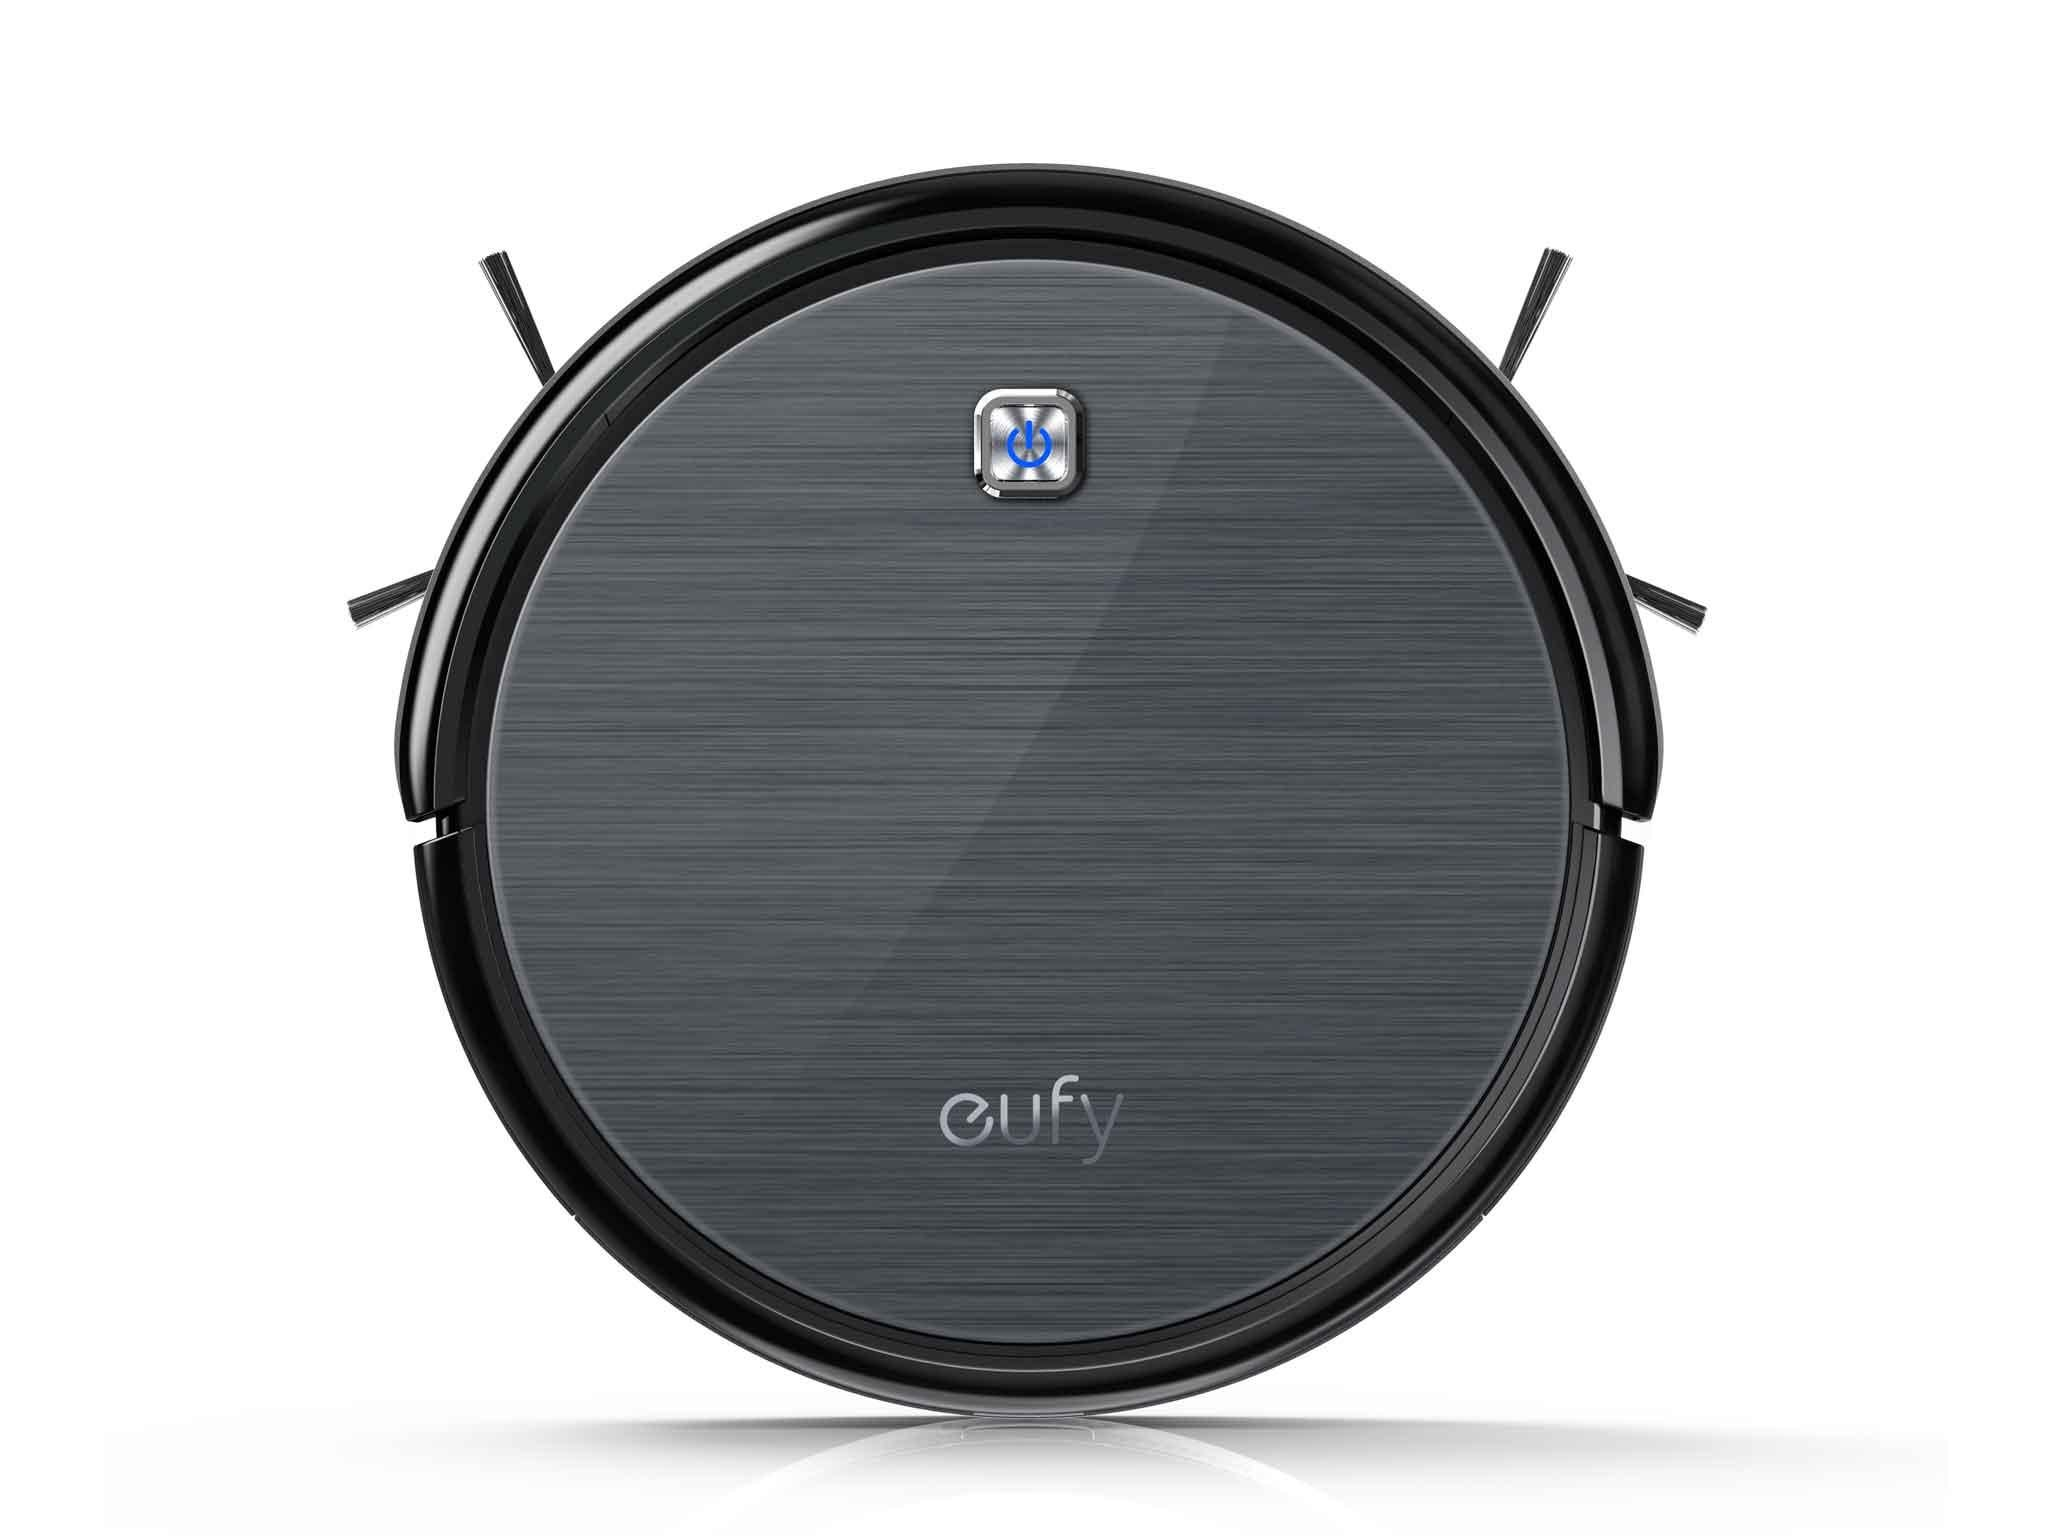 8 best robot vacuum cleaners | The Independent